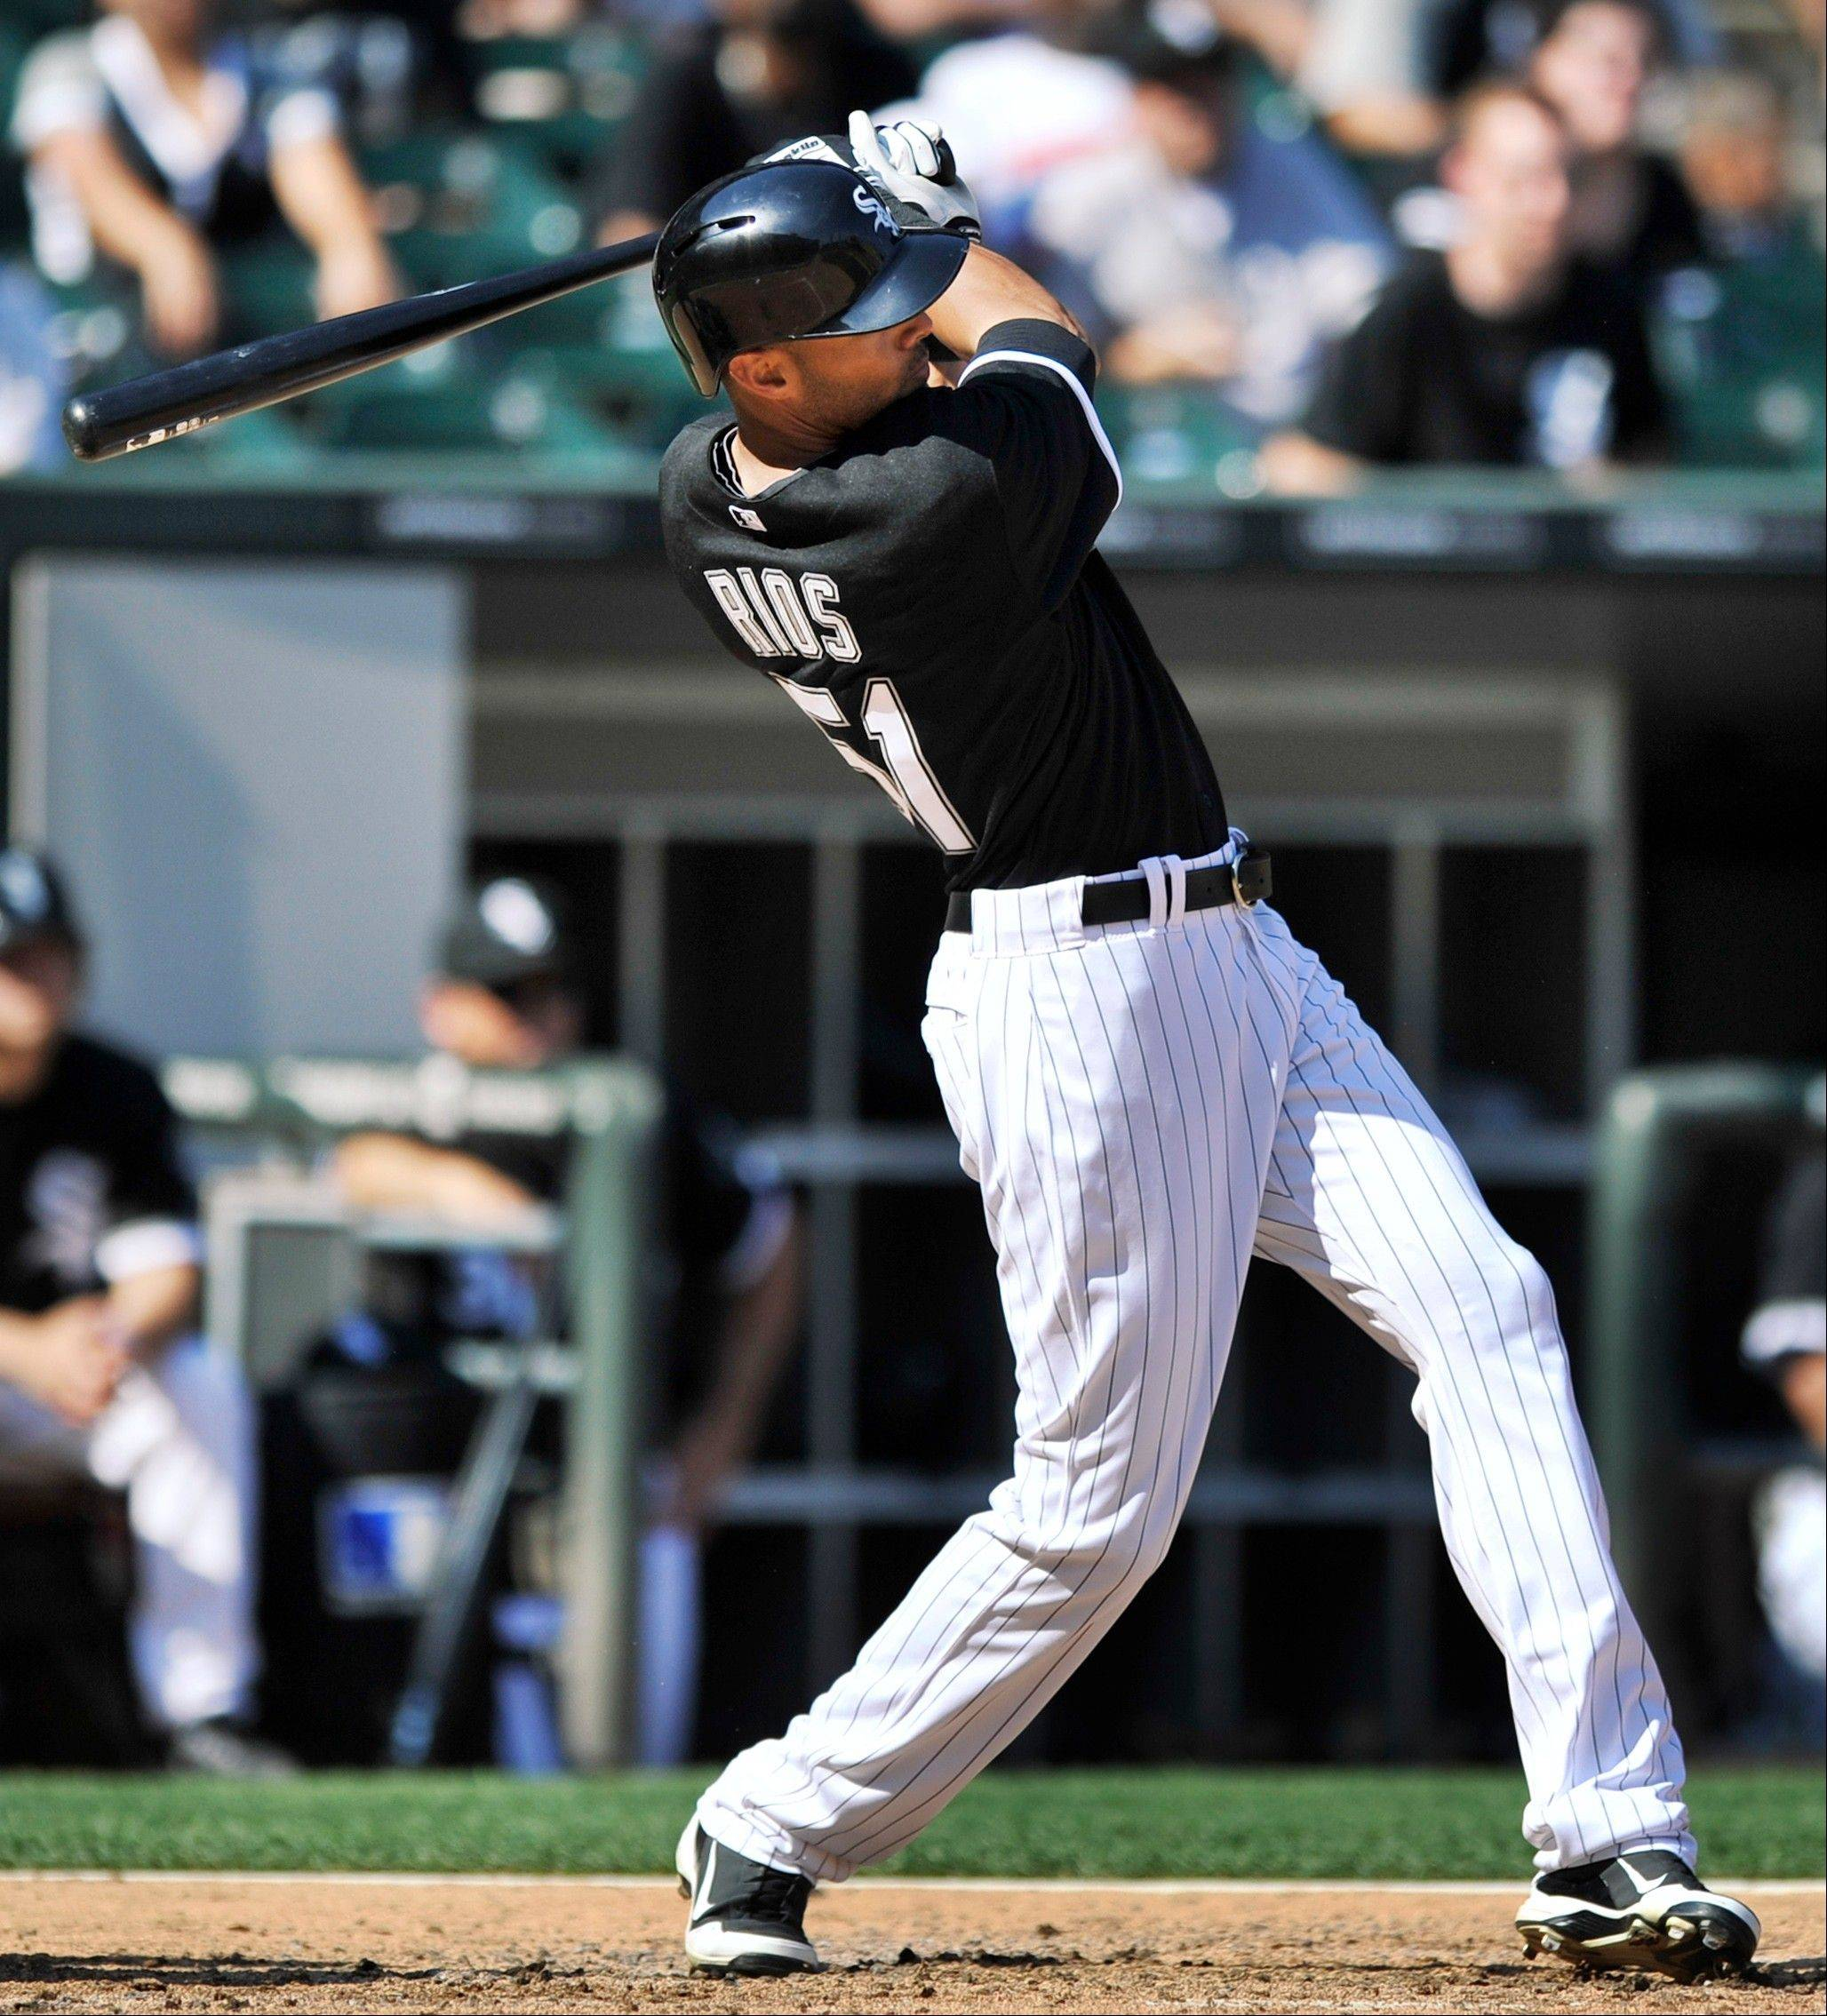 Rios back in lineup, slams White Sox to victory